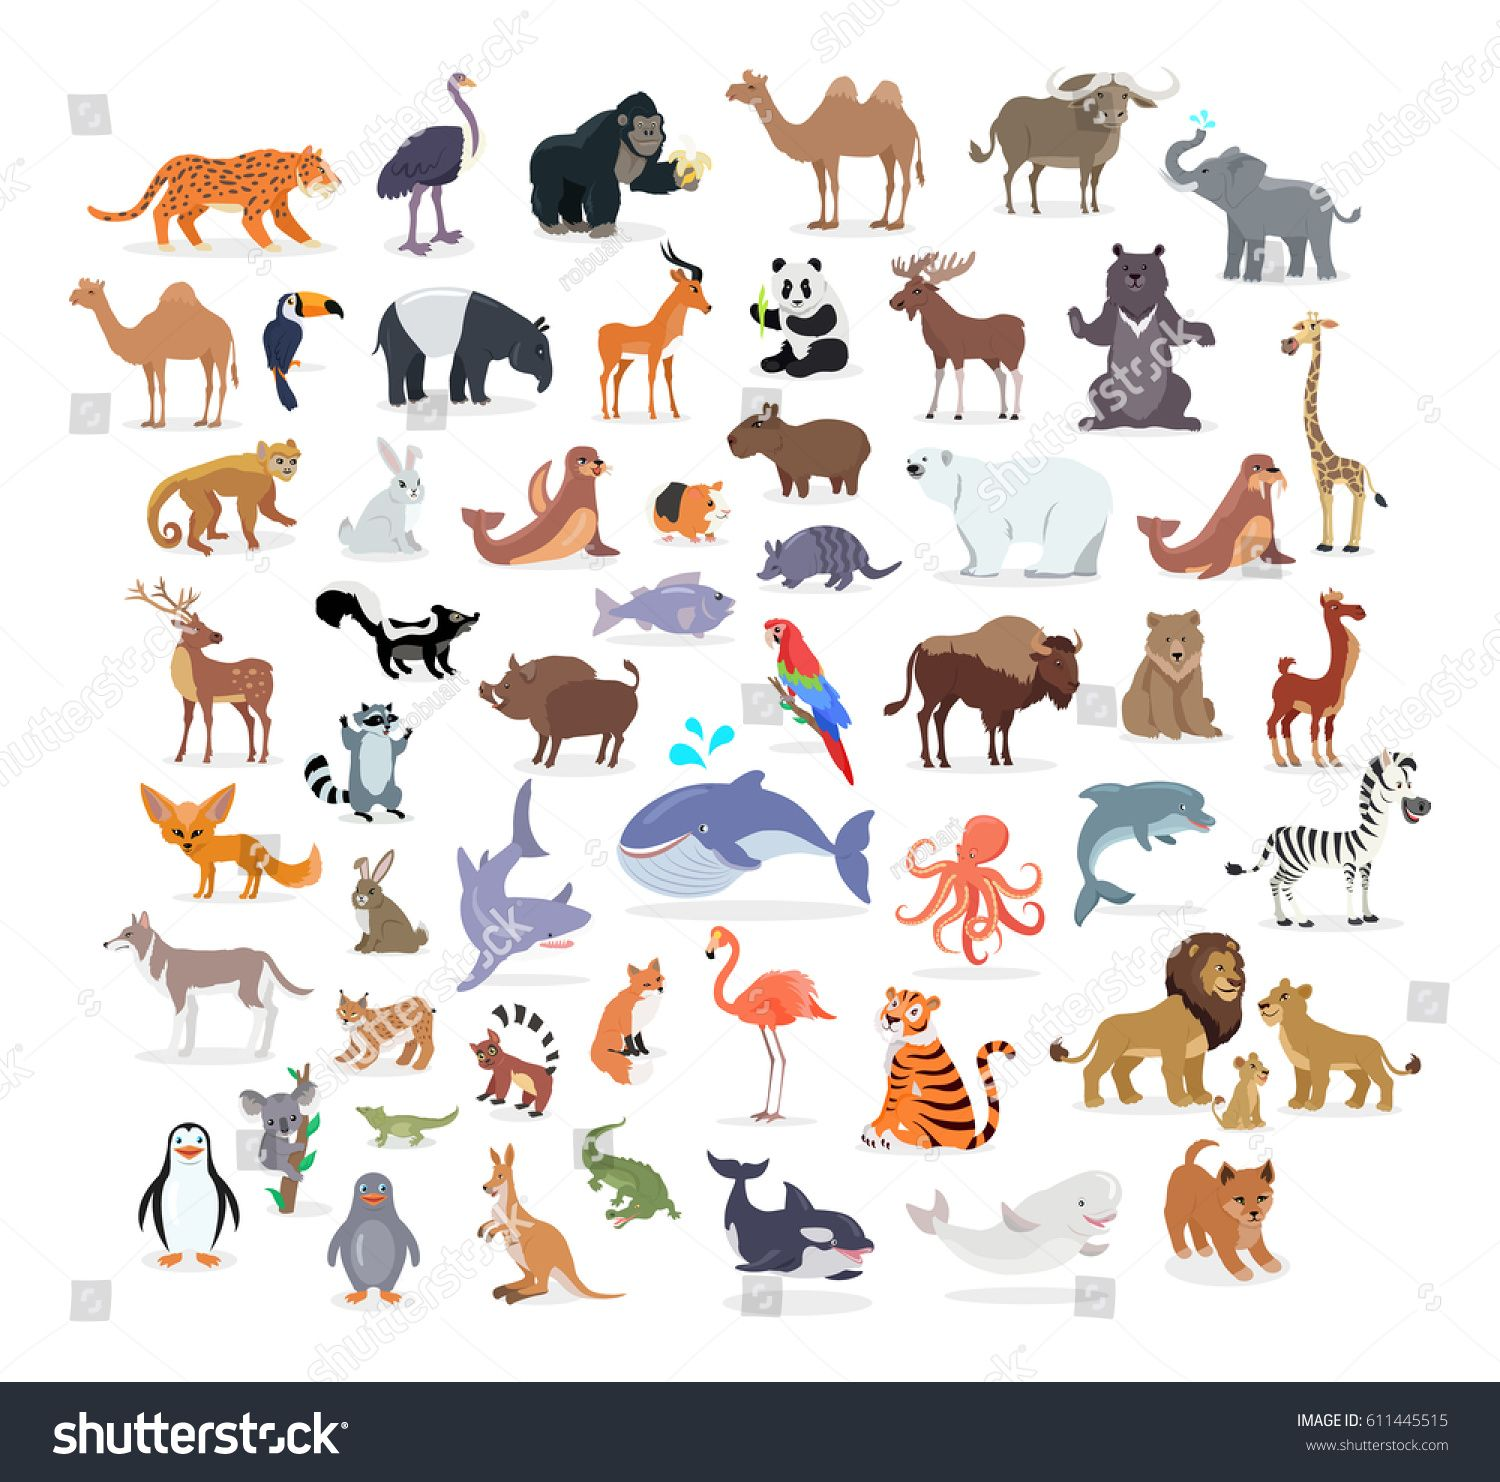 Animal full length portraits collection on white. Vector